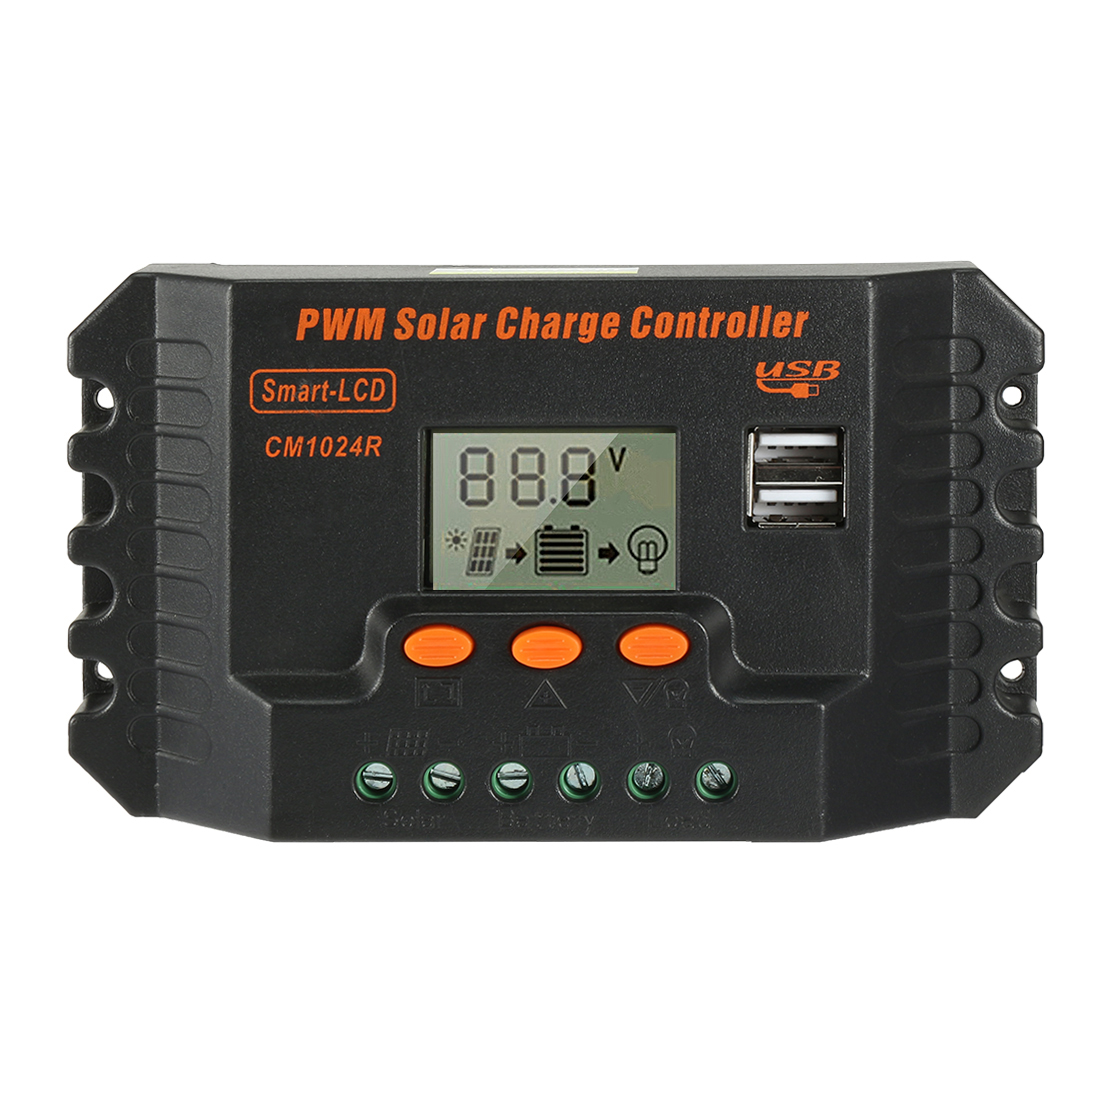 Intelligent 10A PWM Solar Panel Charge Controller 12V-24V Battery Regulator CM1024R